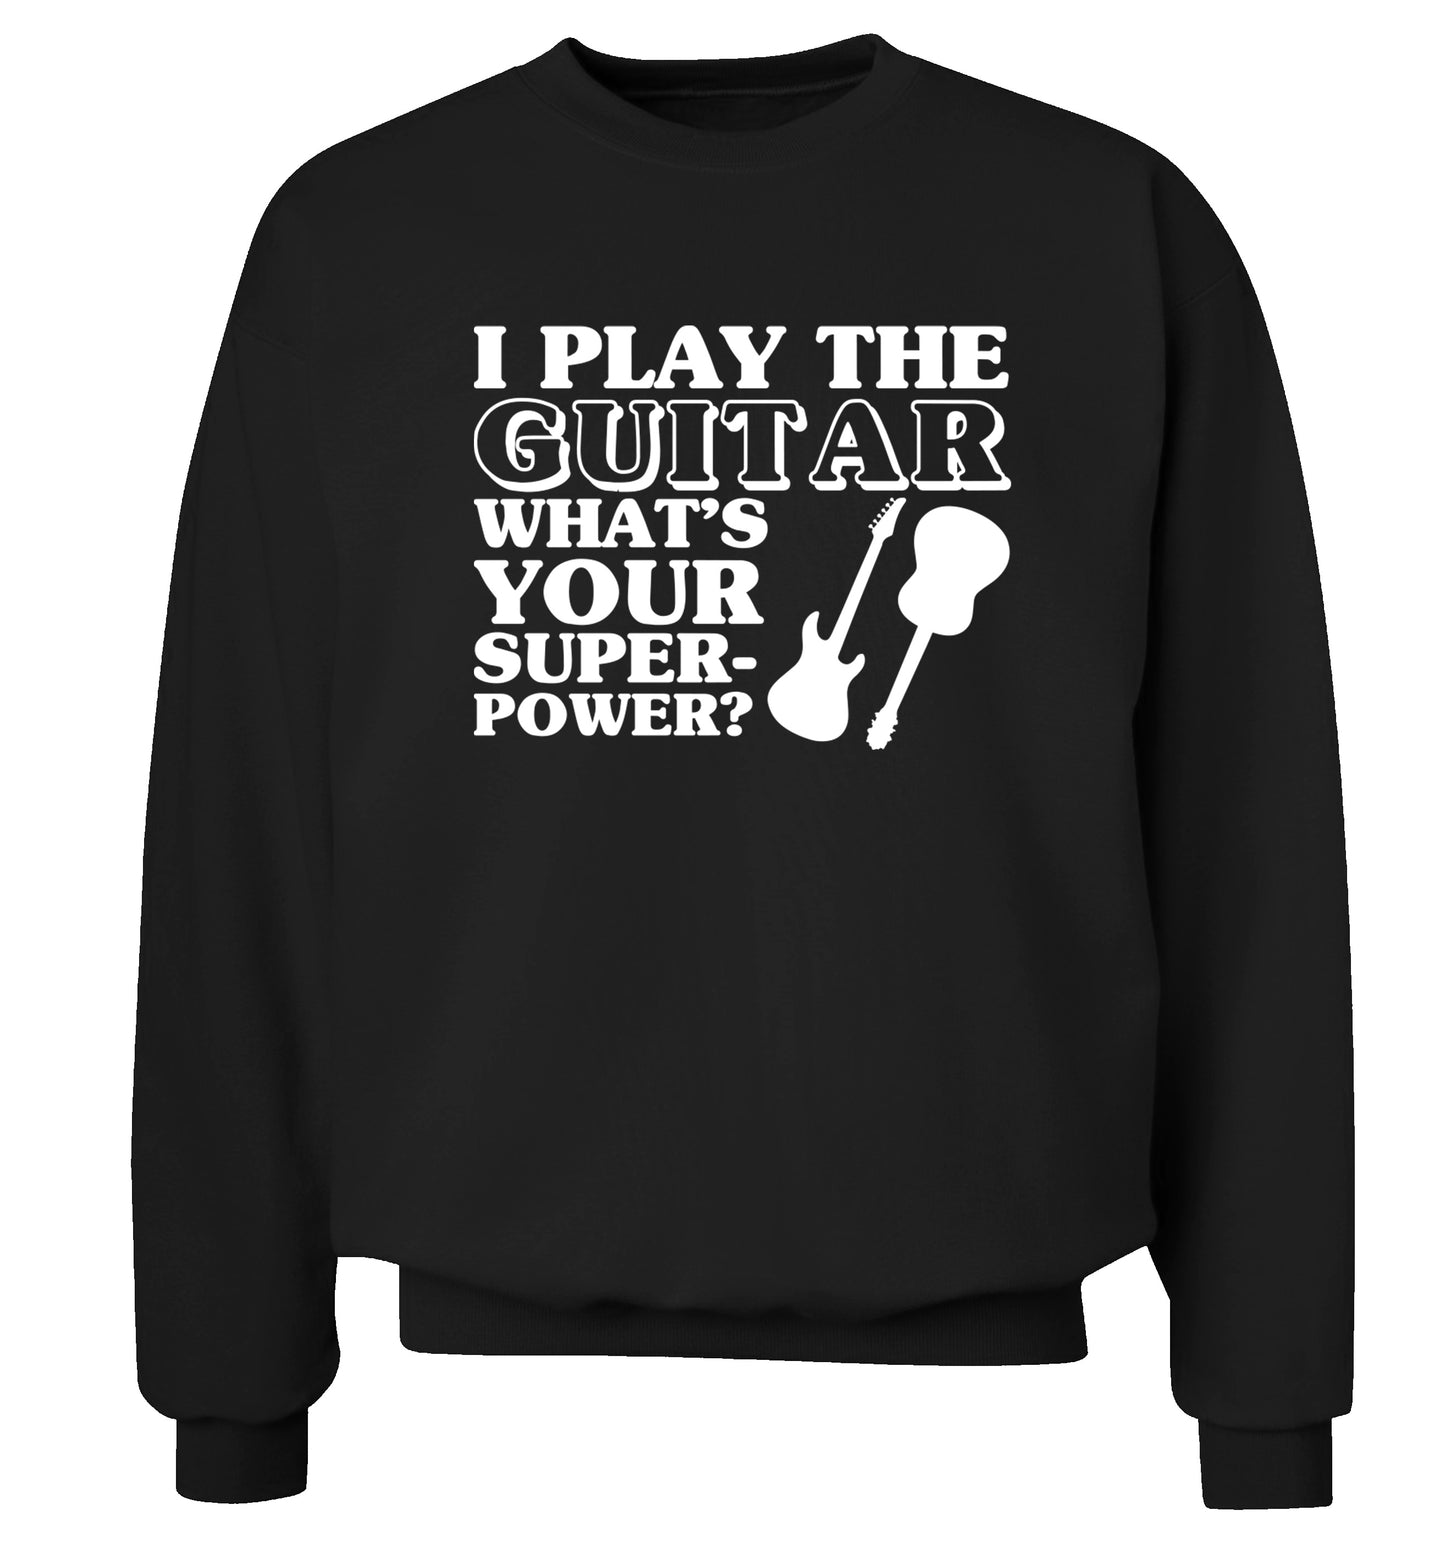 I play the guitar what's your superpower? Adult's unisex black Sweater XS